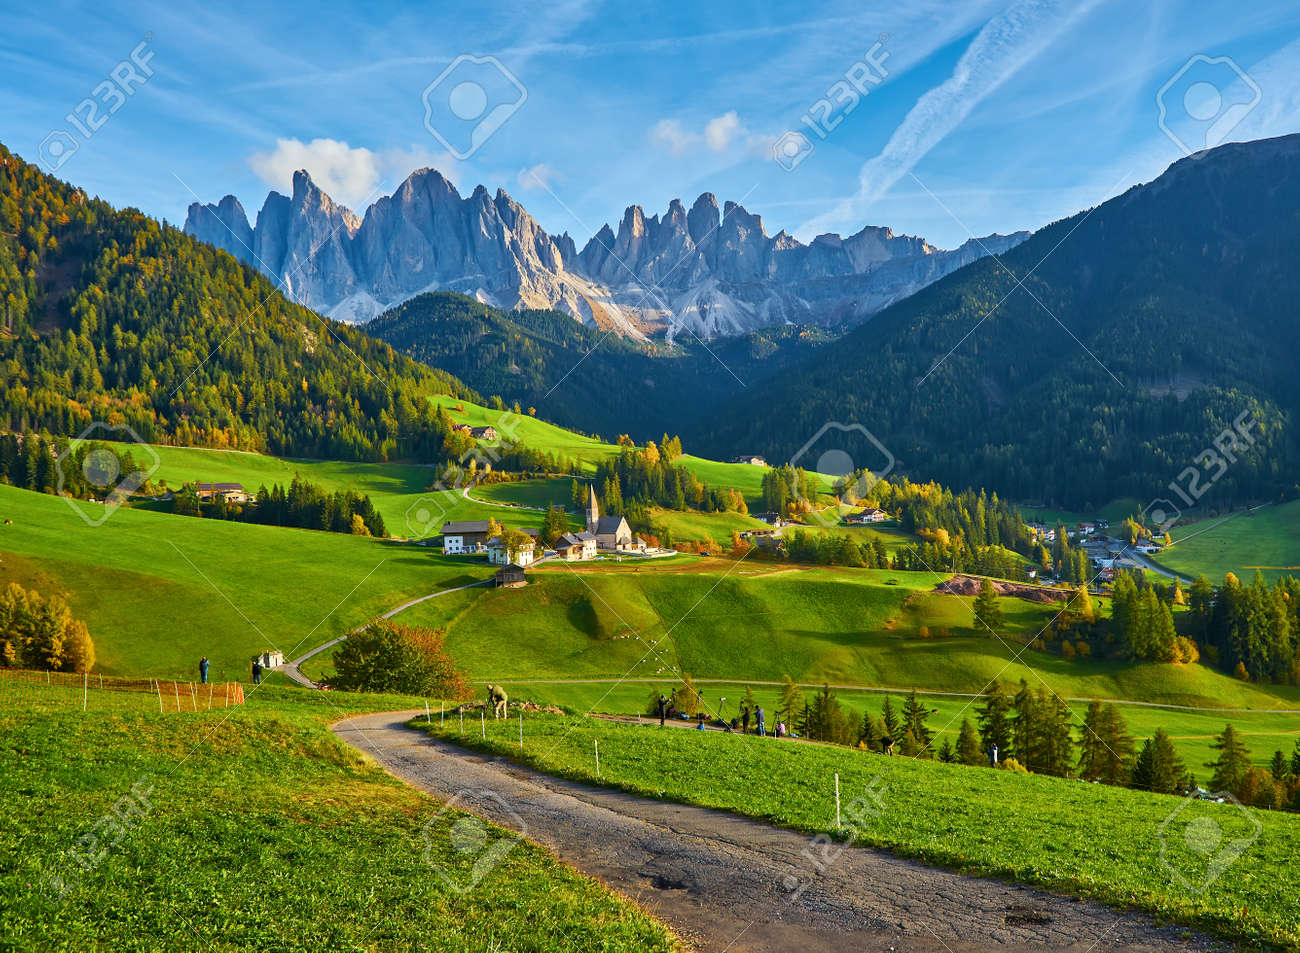 Famous best alpine place of the world, Santa Maddalena village with magical Dolomites mountains in background, Val di Funes valley, Trentino Alto Adige region, Italy, Europe - 173011253